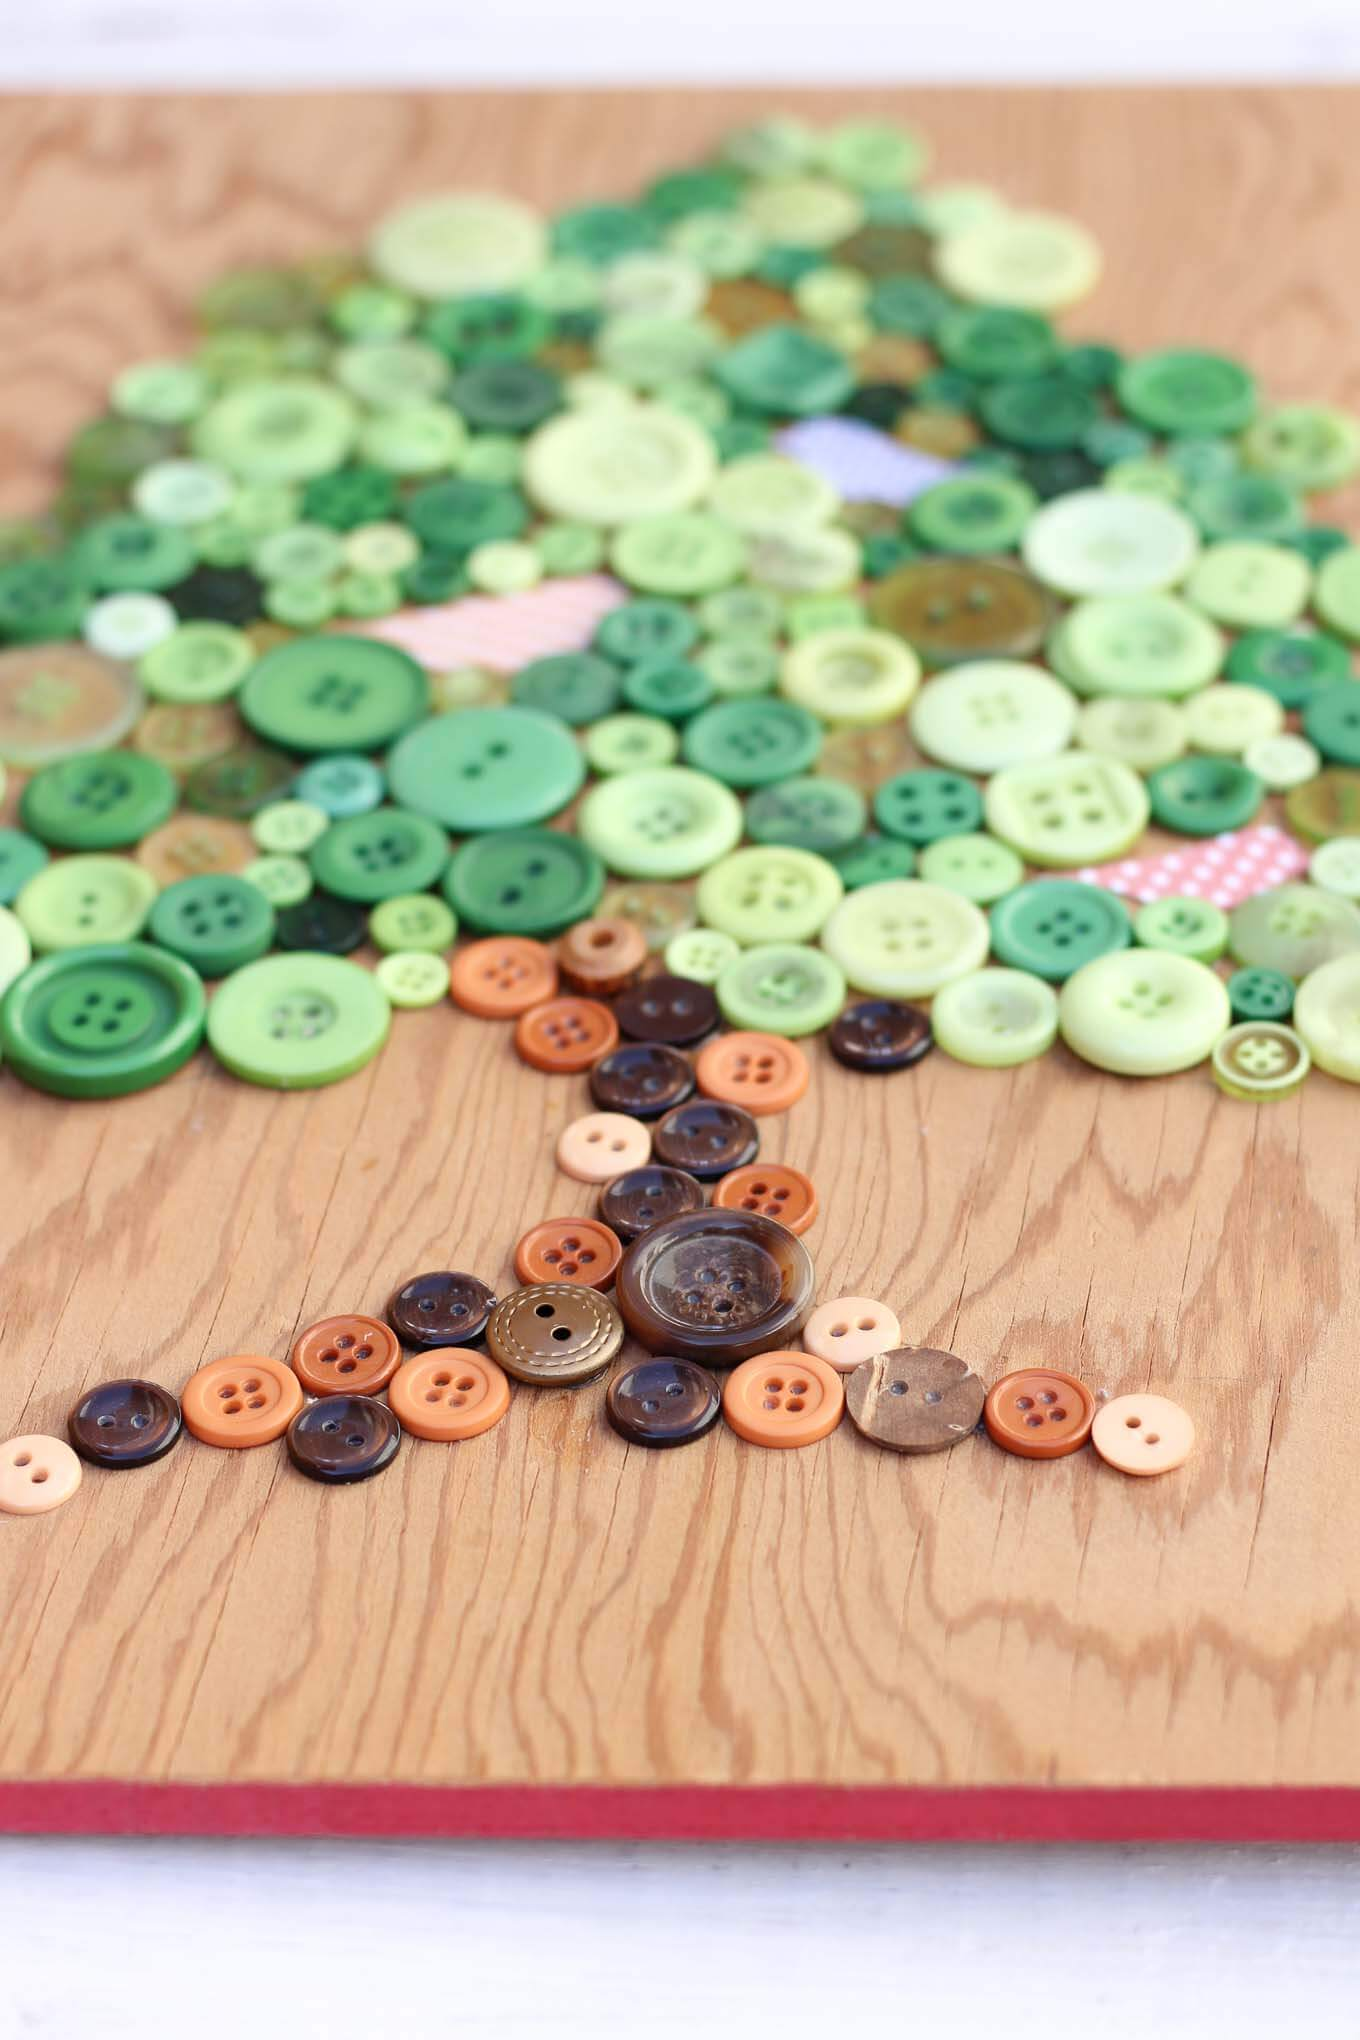 Diy Wall Art Using Buttons With Printable Template